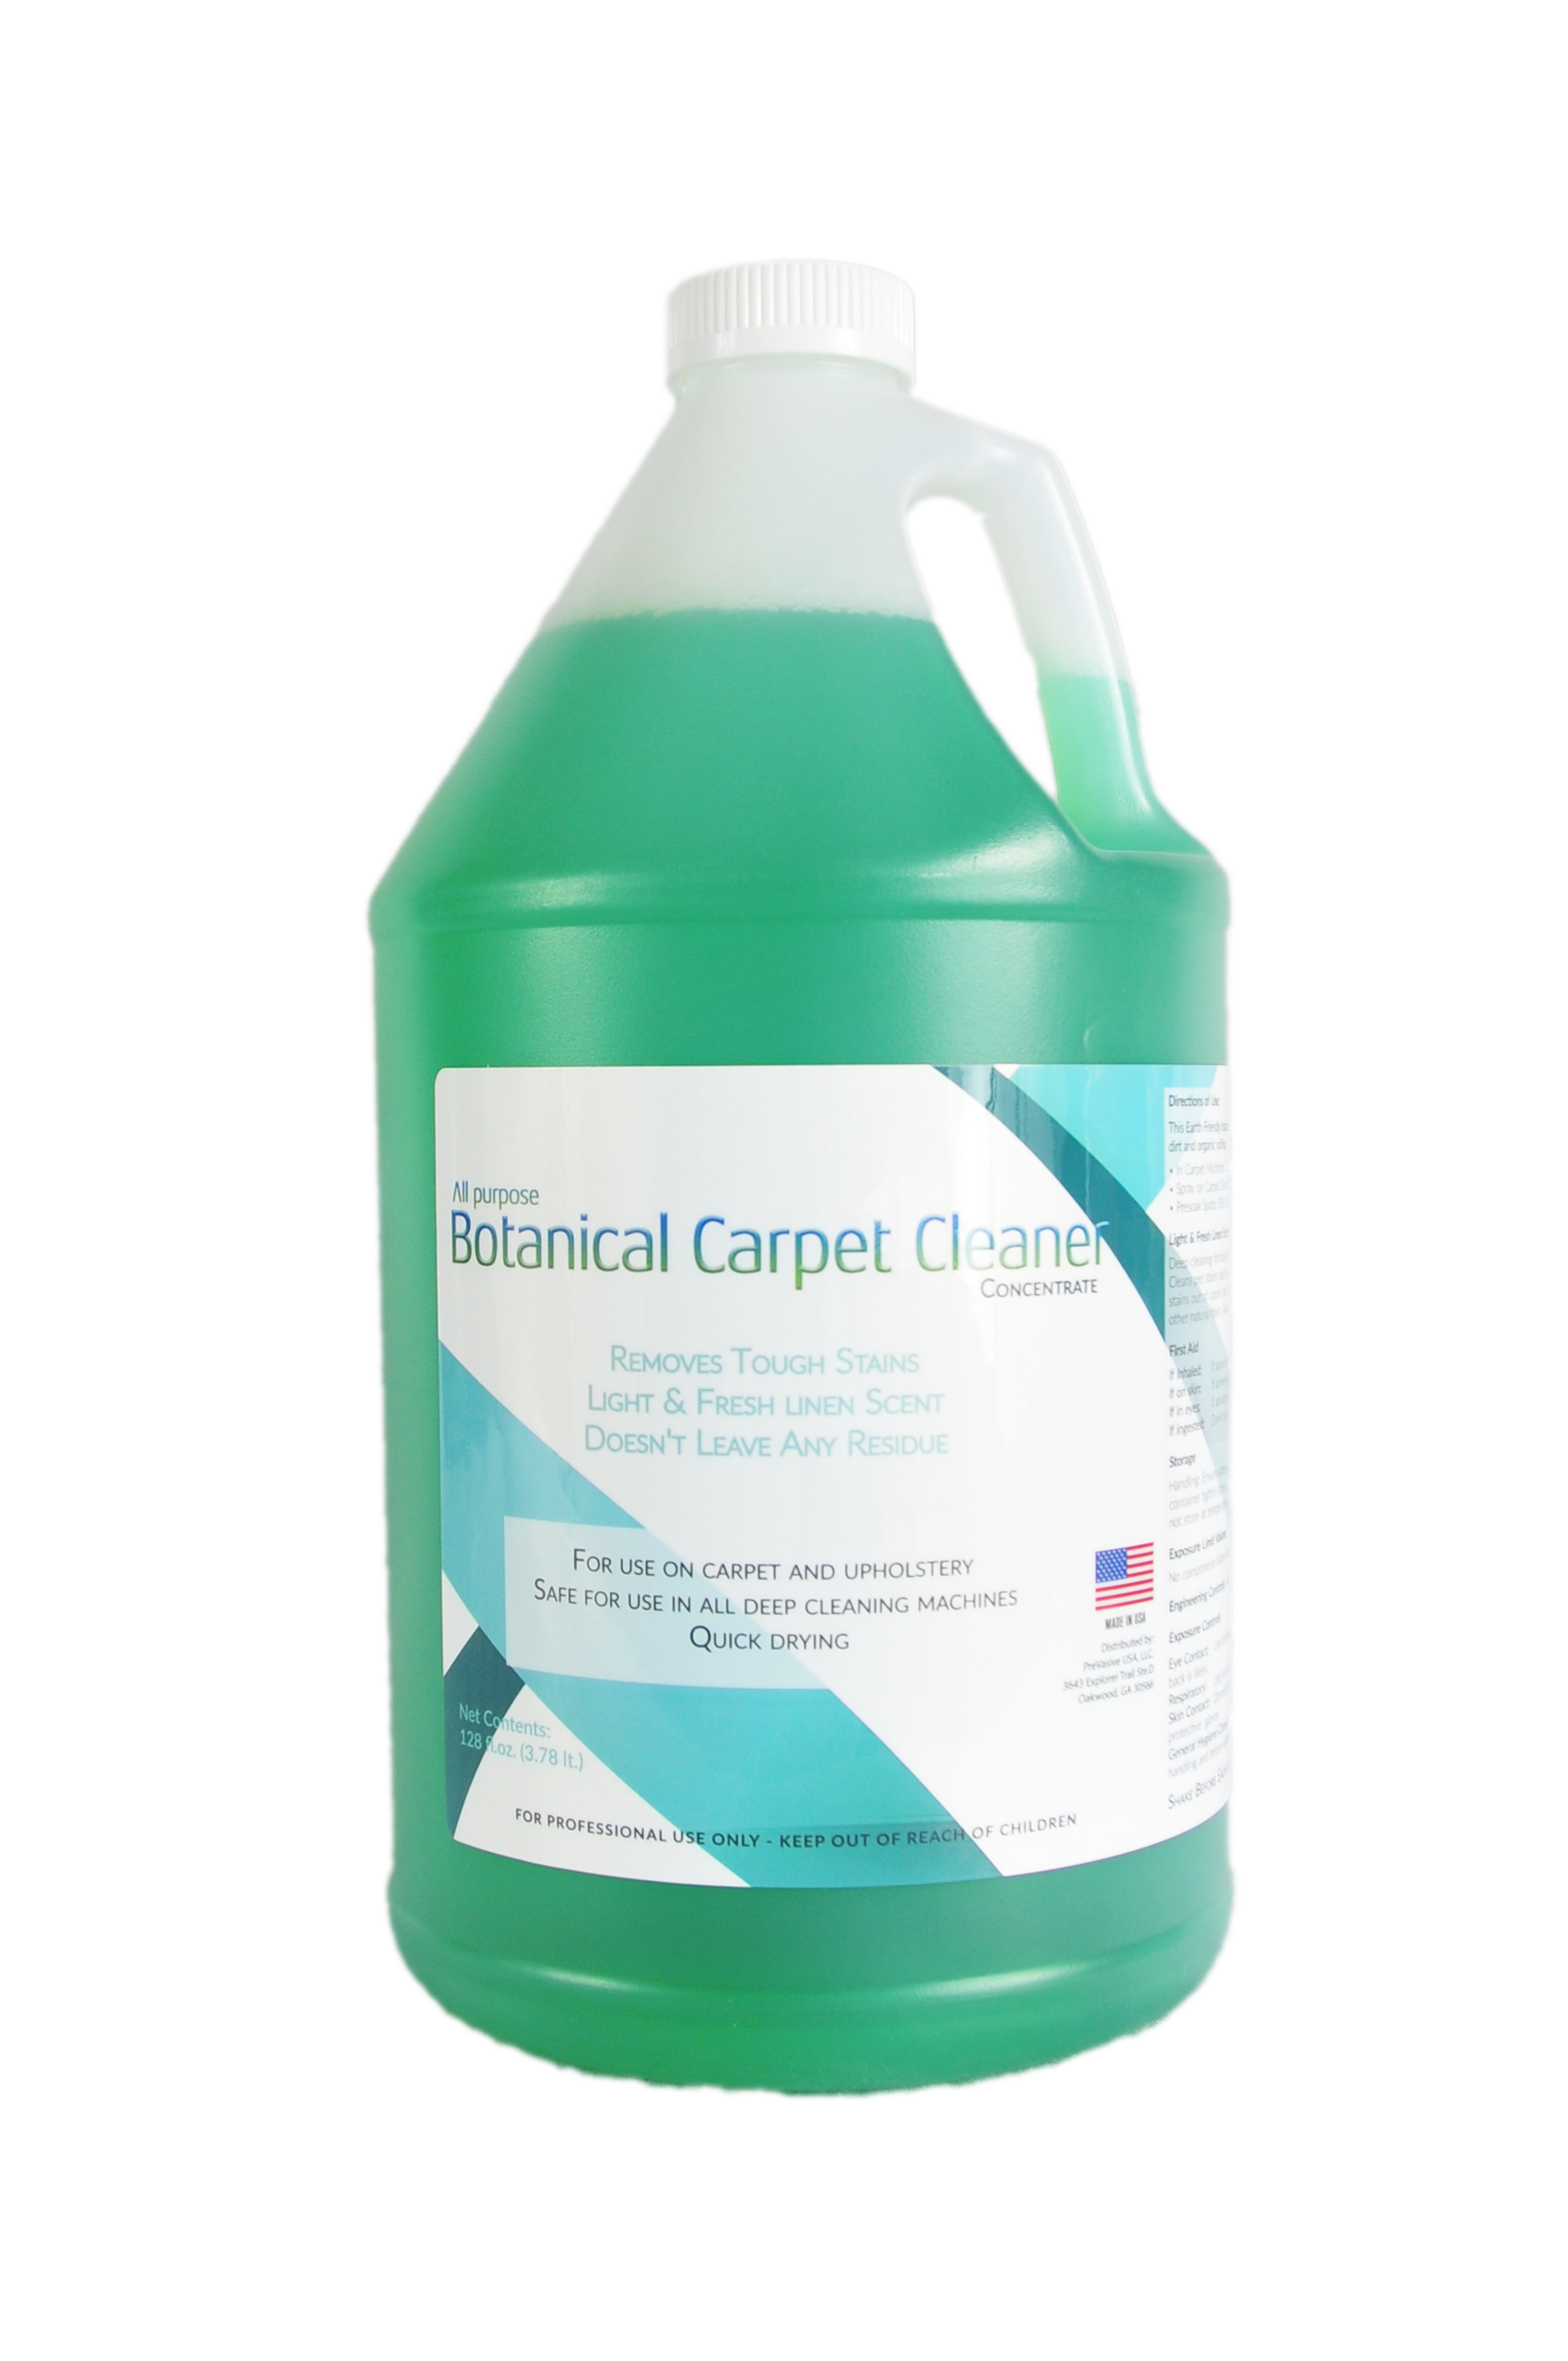 Photo Carpet Shampoo Cleaning Images 1188 Best